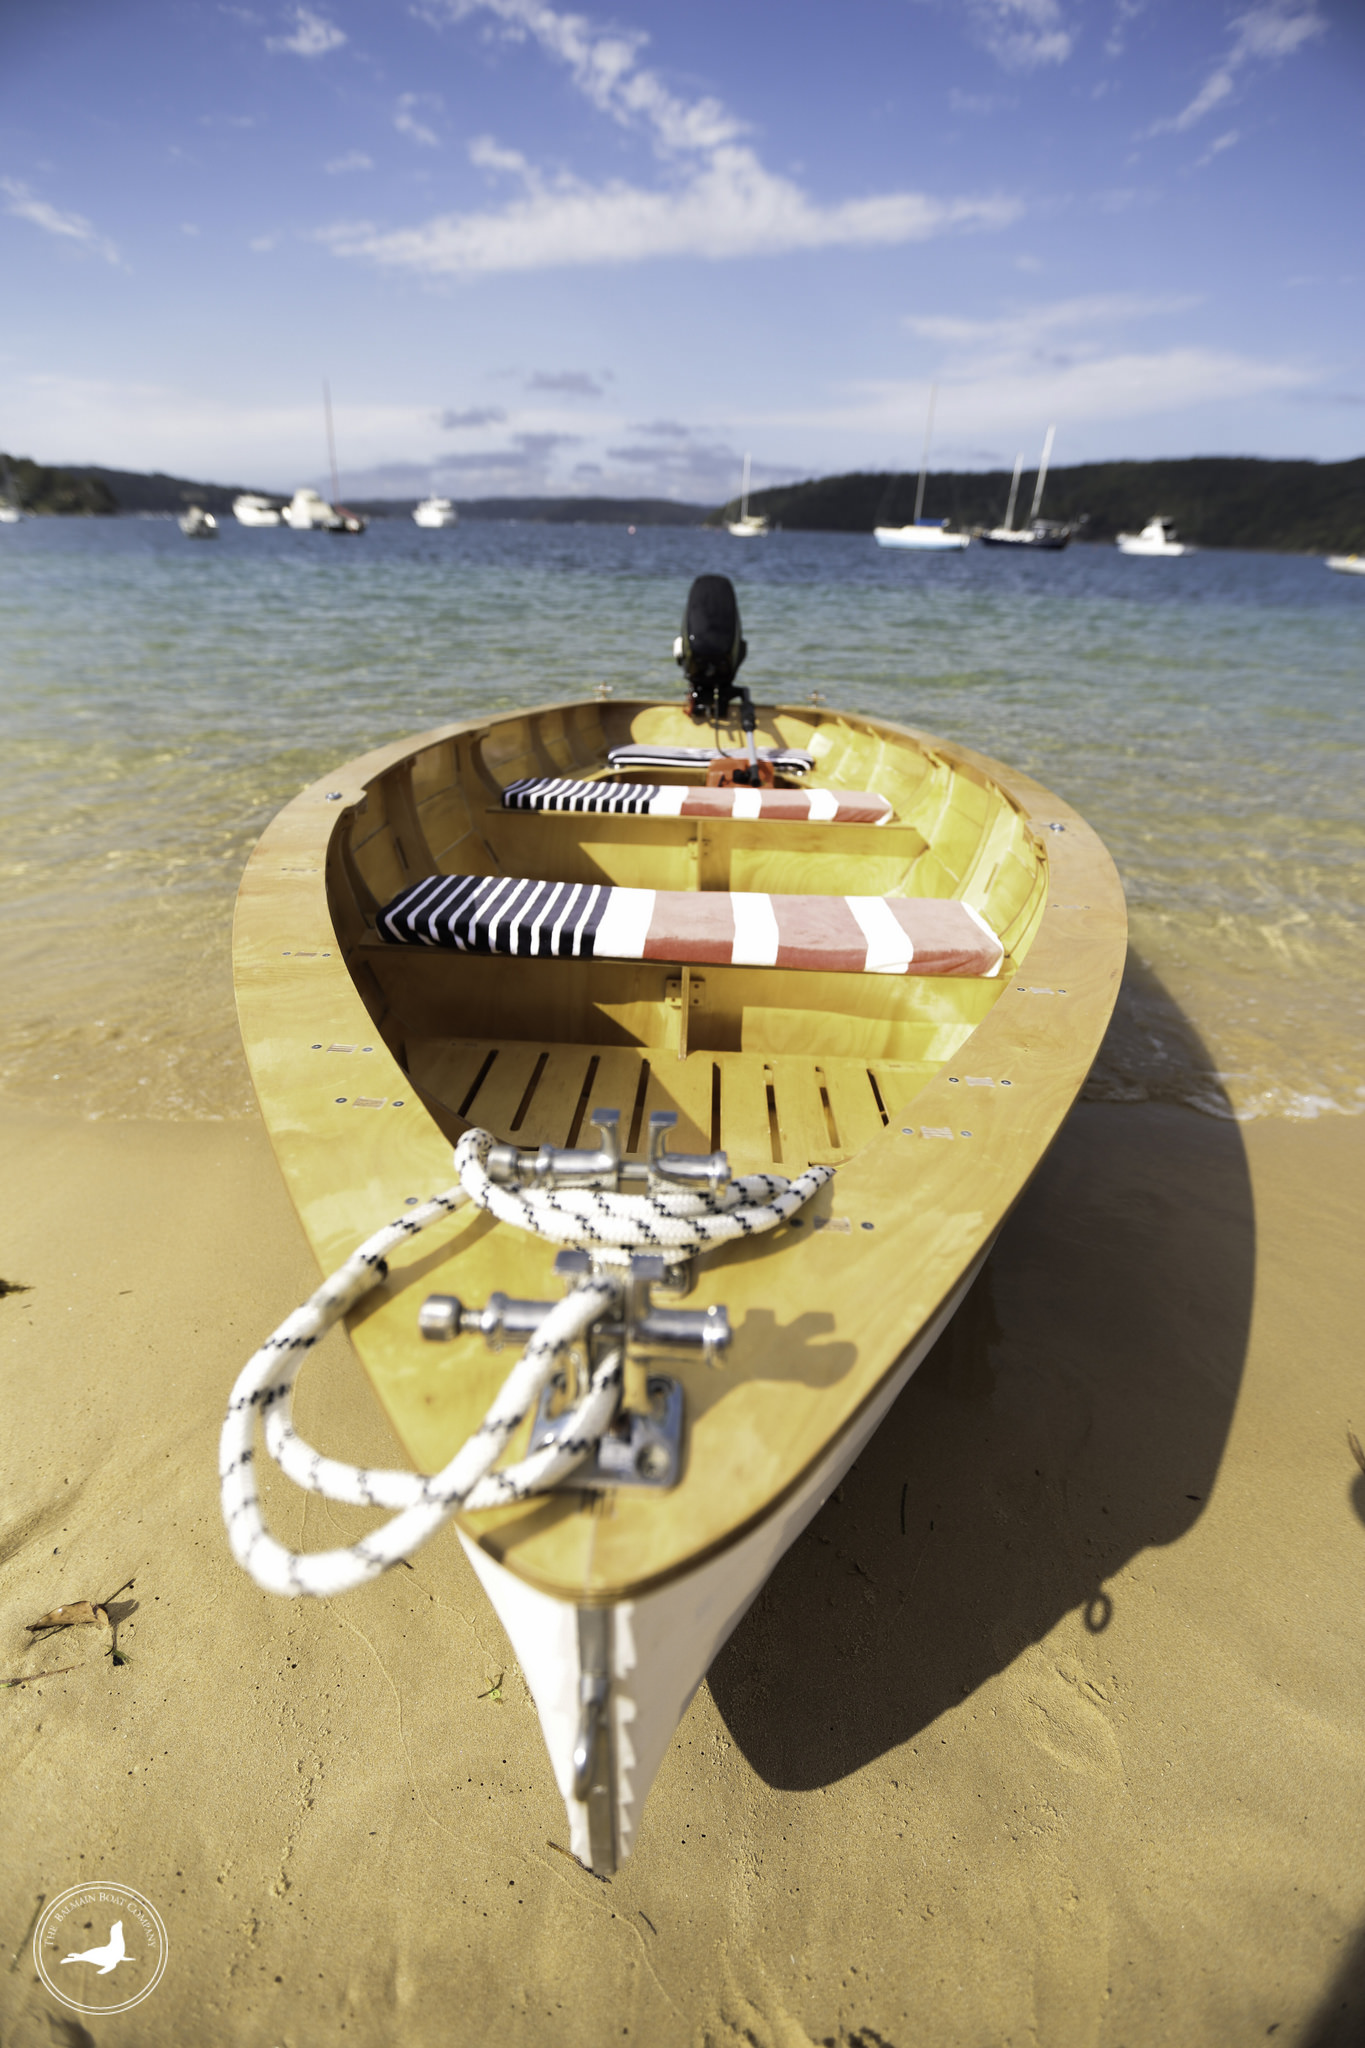 Balmain Boat Company - DIY your own boat!